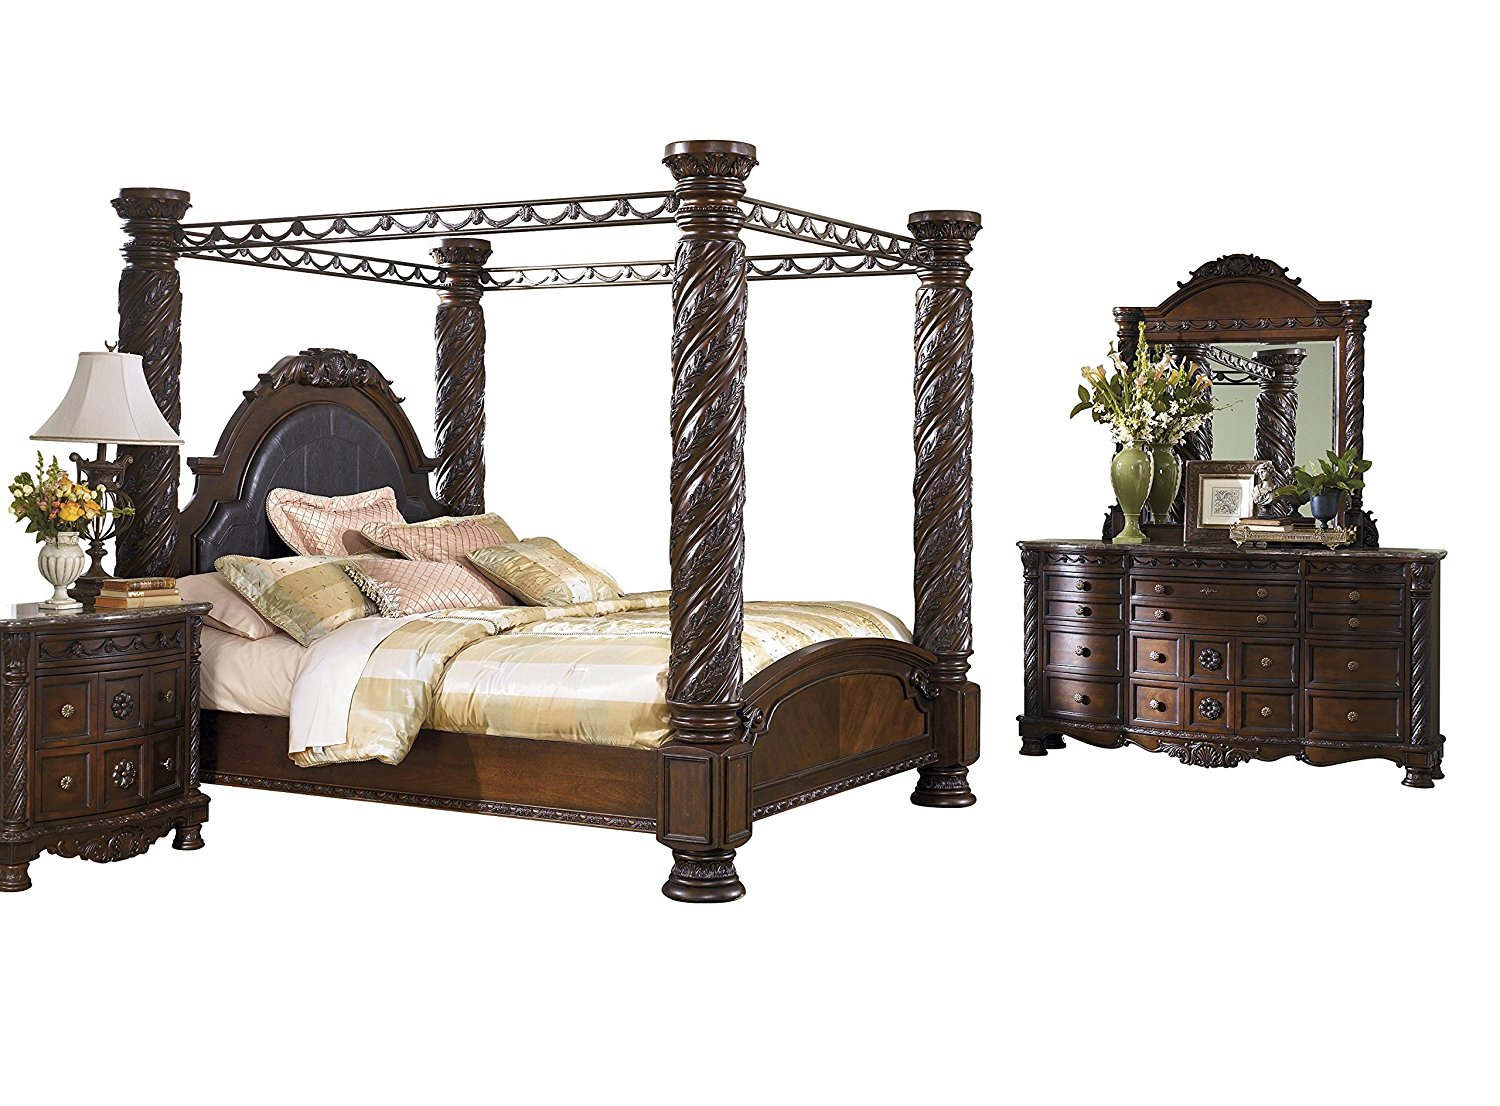 4 Poster Canopy King Bed Cheap 4 Poster Bed King Find 4 Poster Bed King Deals On Line At